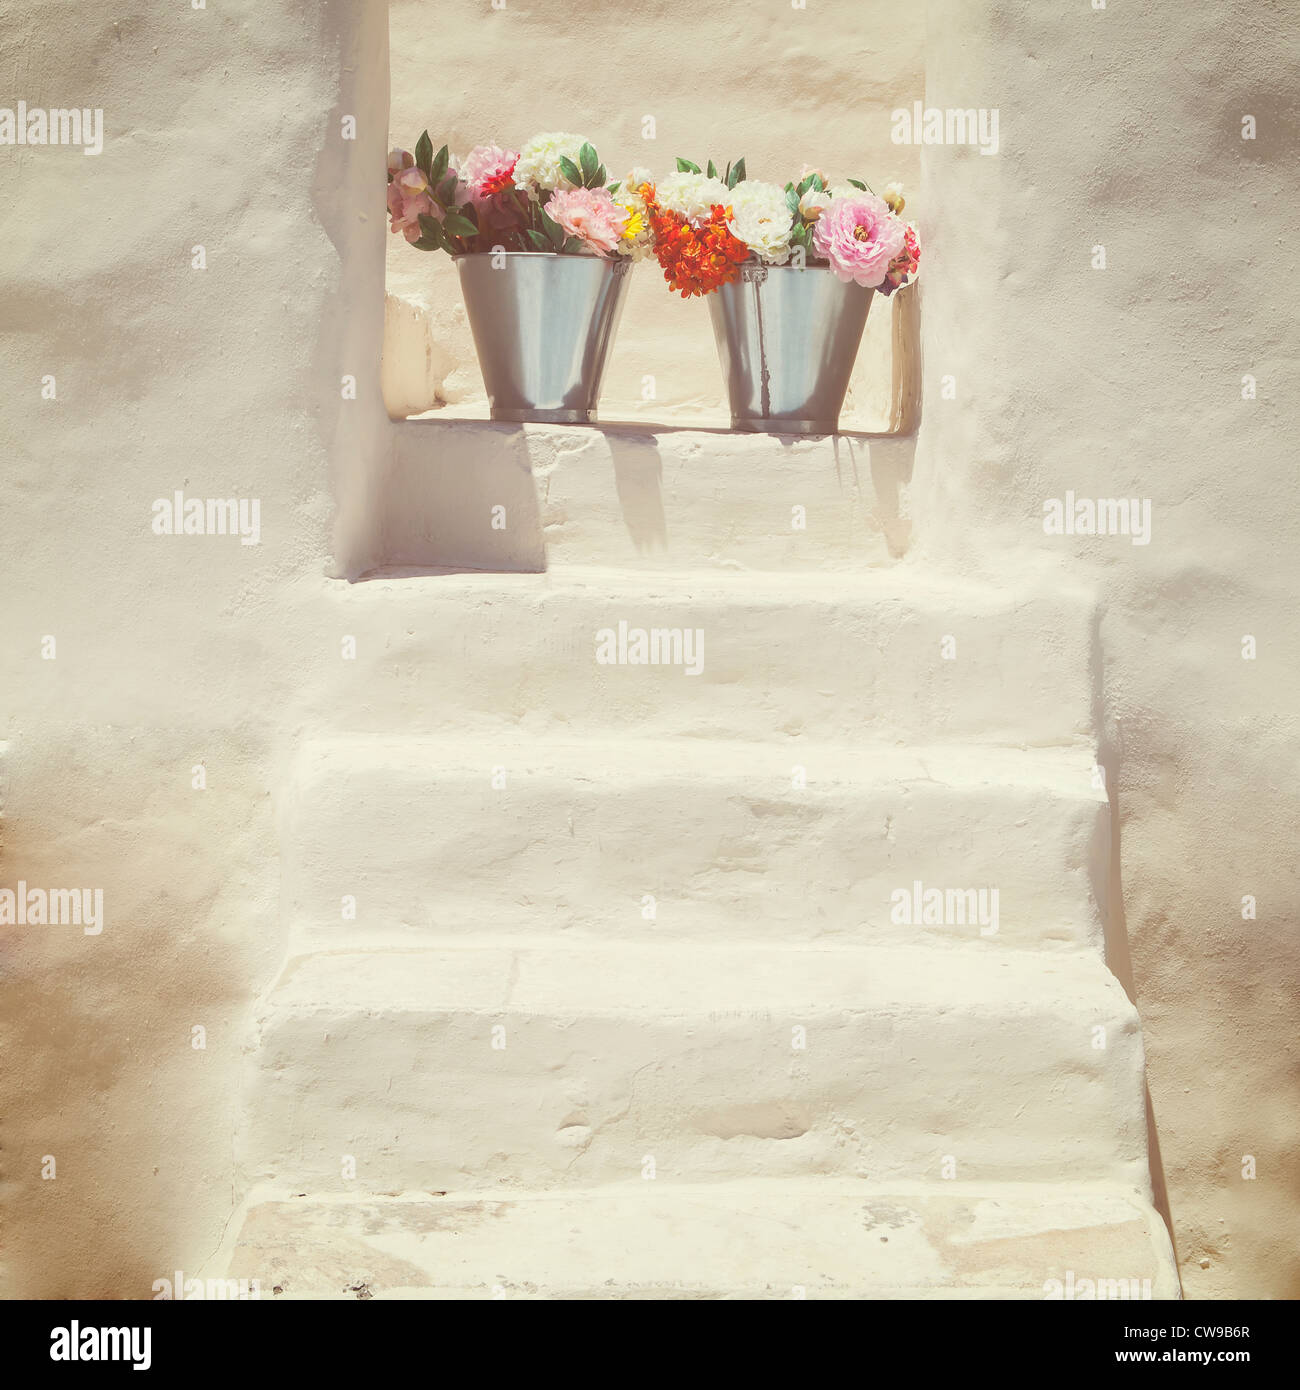 A staircase of a Greek, white house with two bunches of flowers - Stock Image